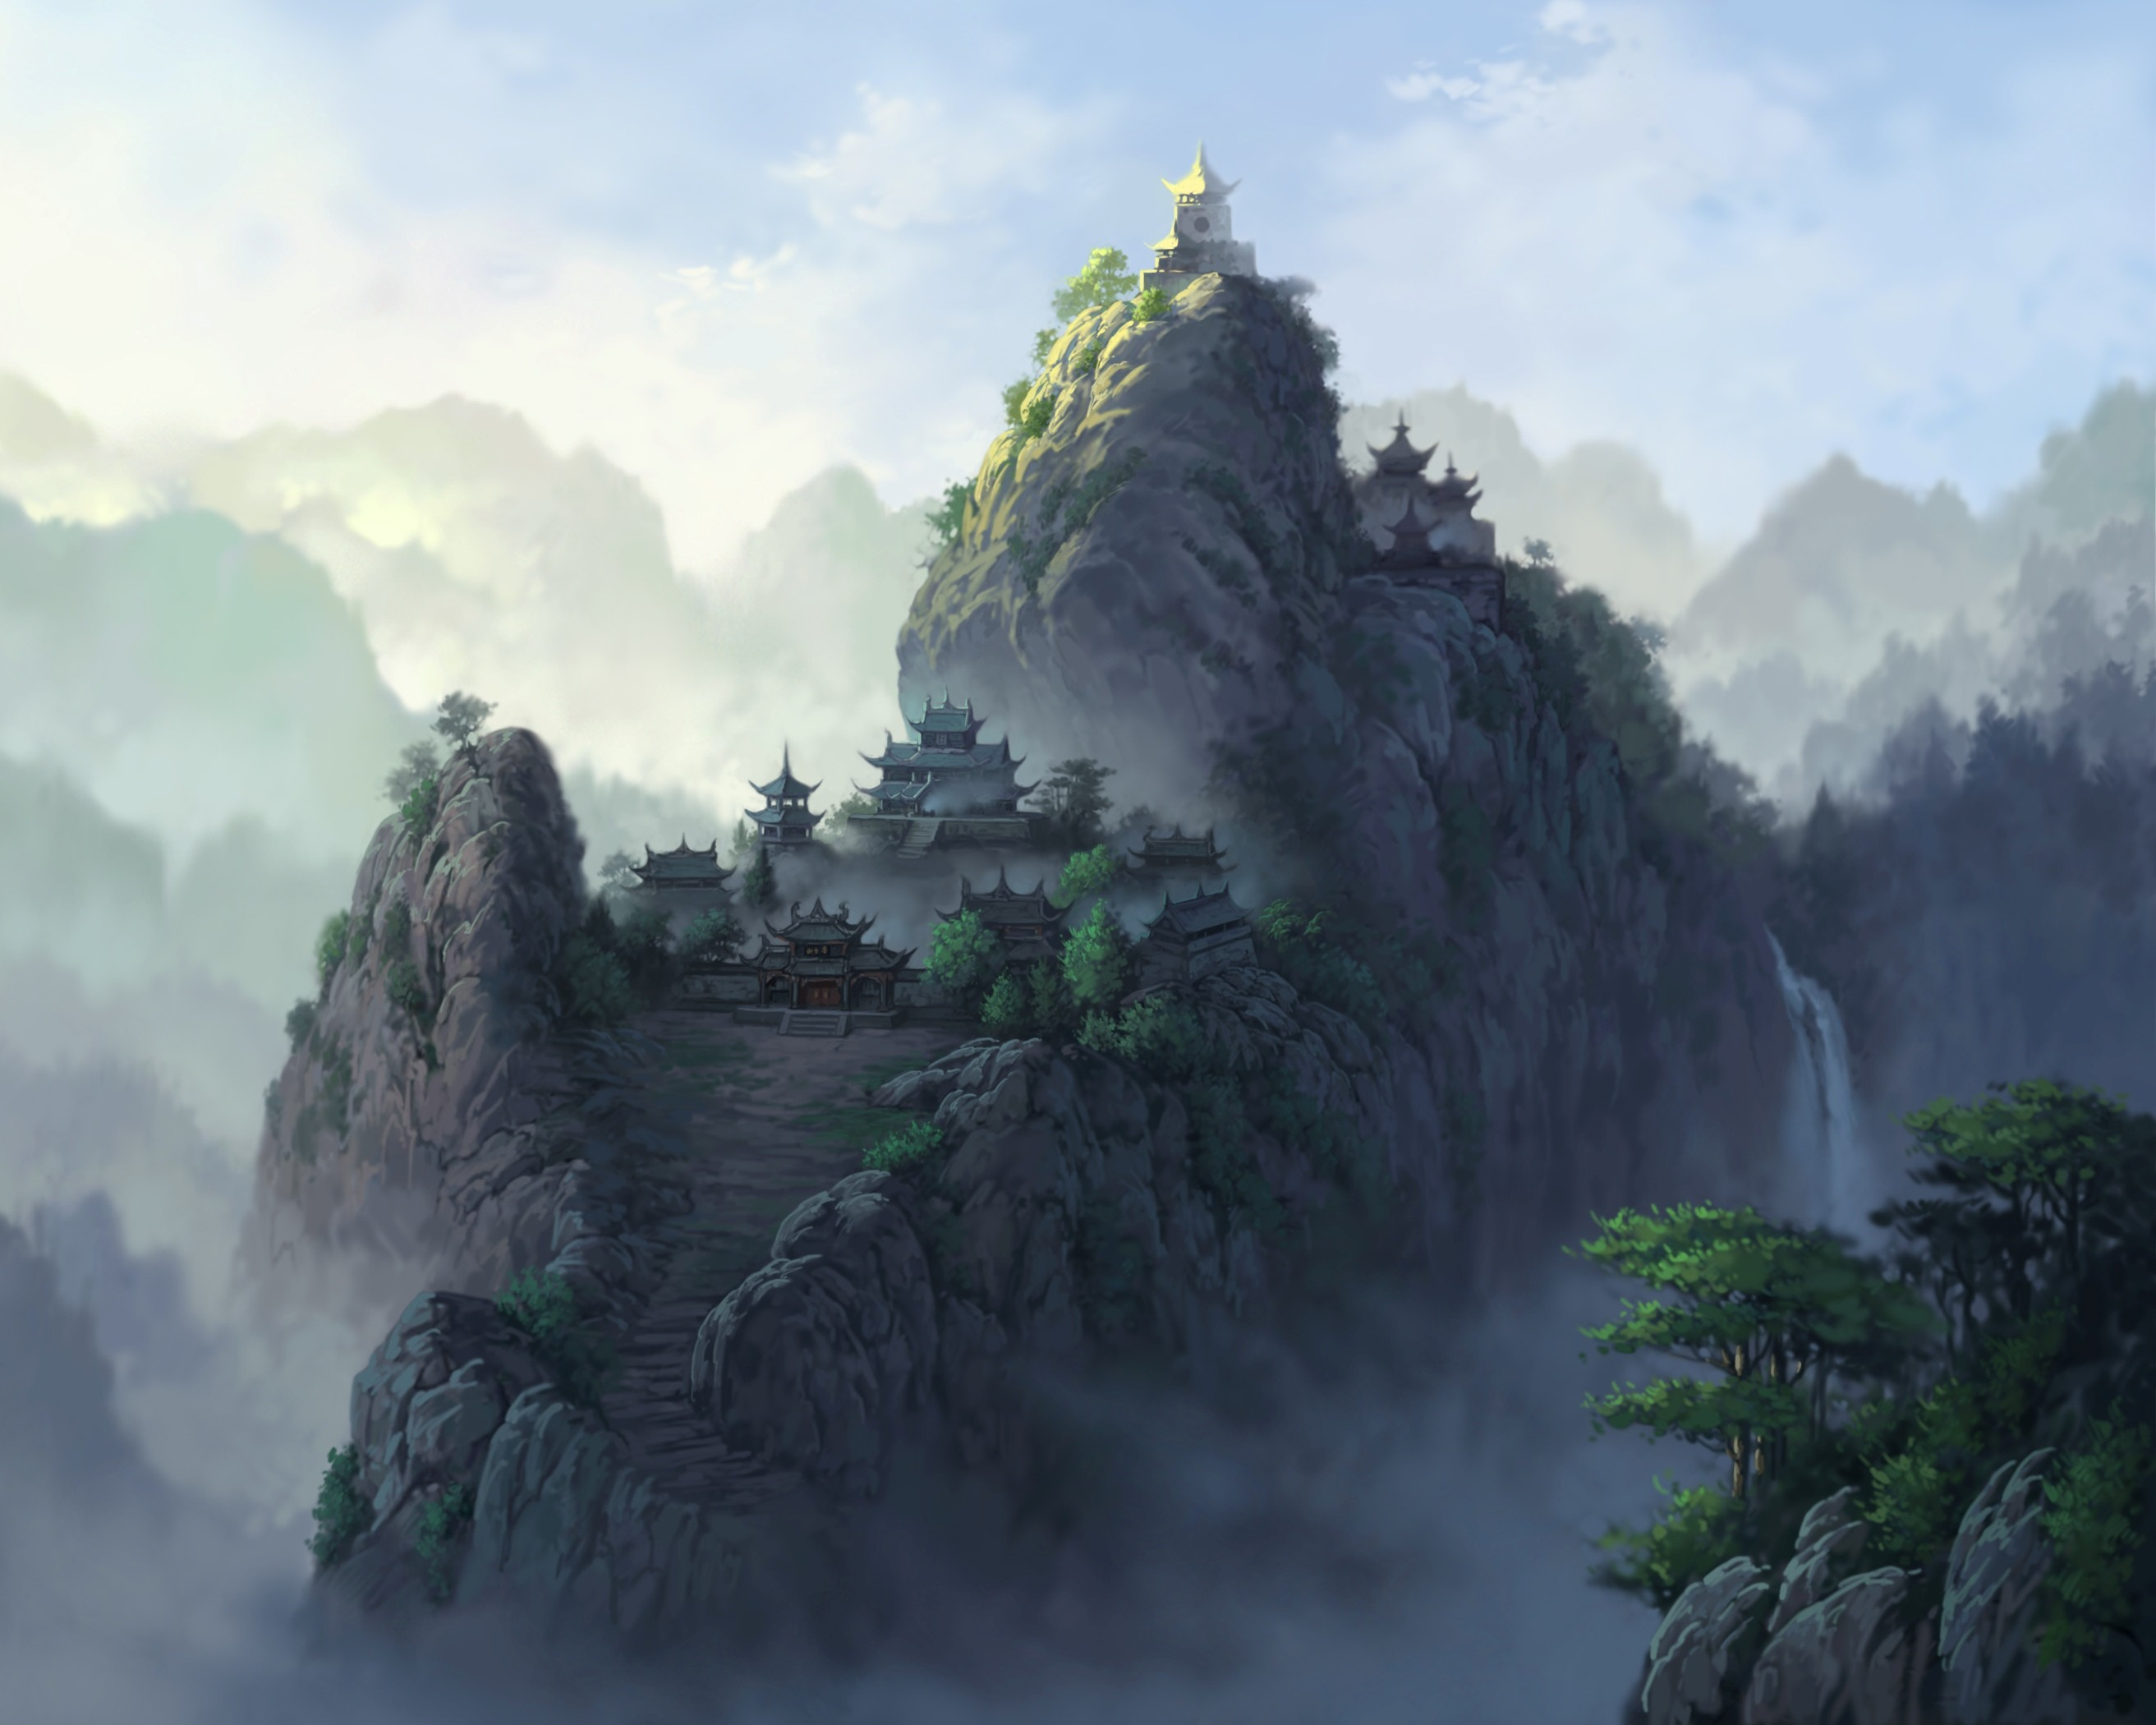 Res: 2625x2100, Landscapes castles asian oriental mountains waterfalls trees sky fog  wallpaper |  | 37915 | WallpaperUP